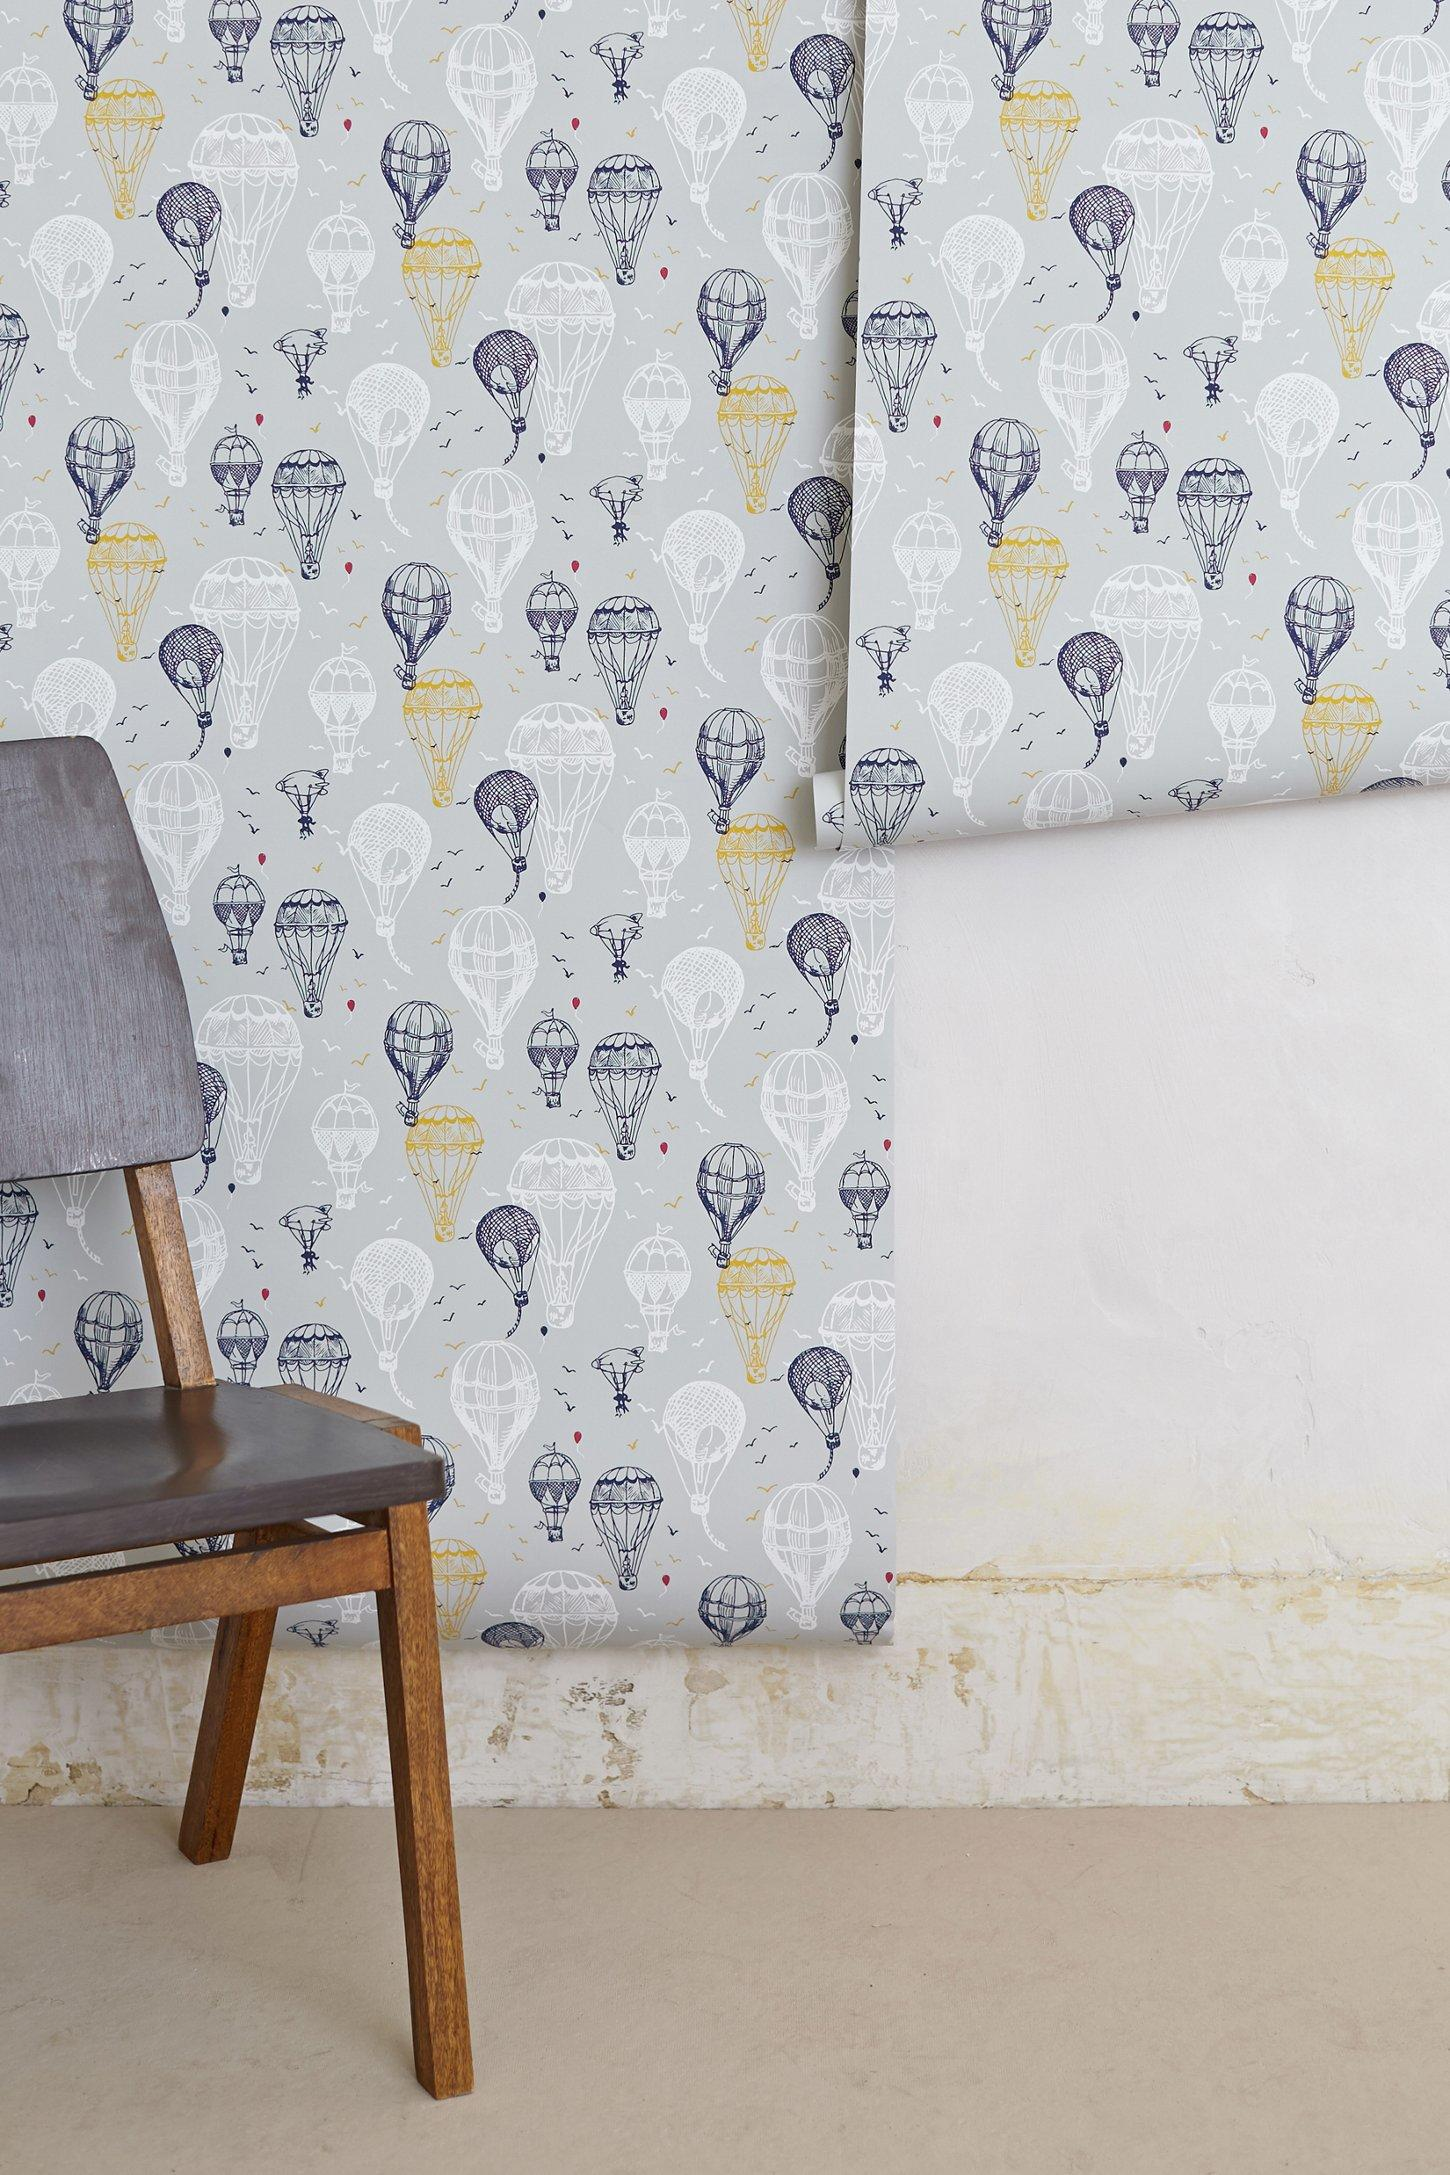 Hot air balloons wallpaper from anthropologie bedroom for Anthropologie wallpaper